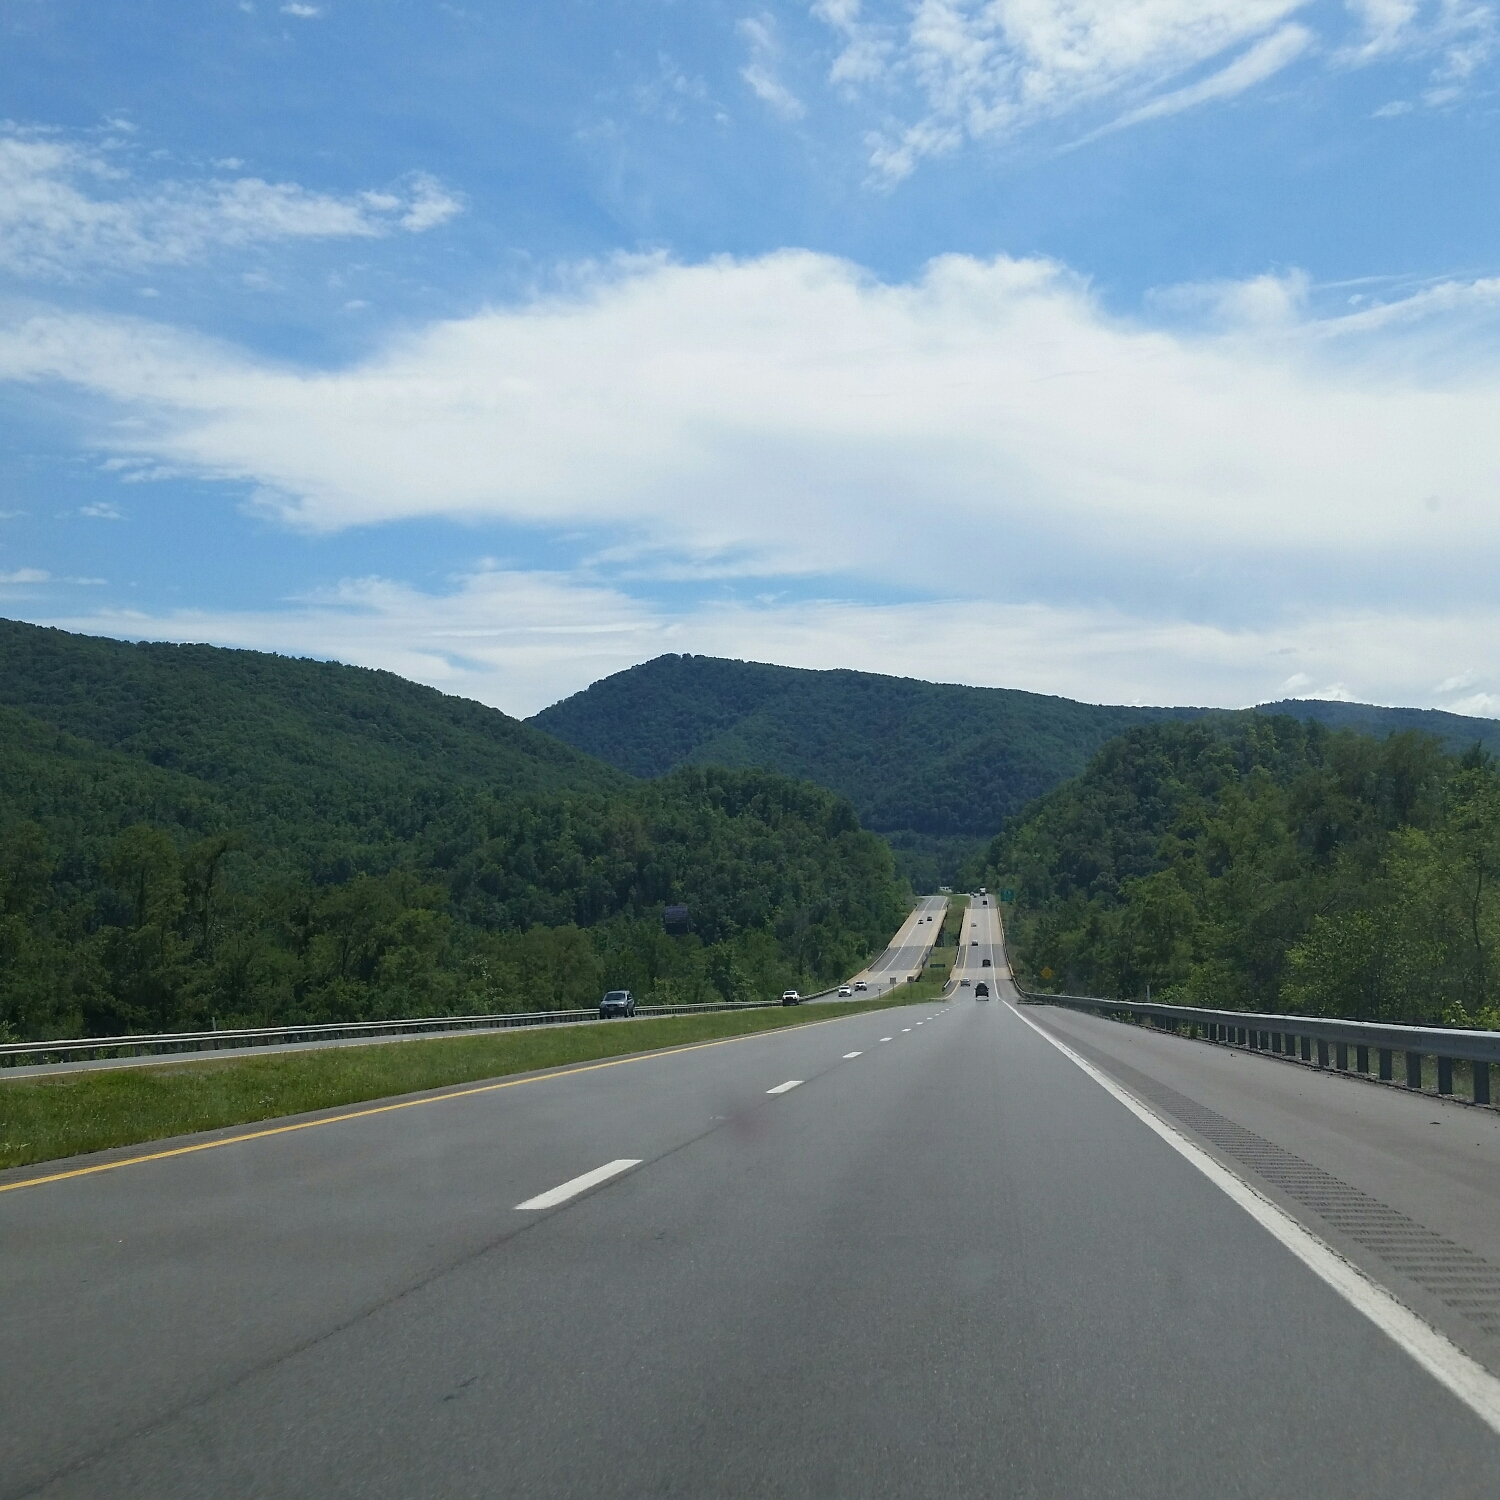 but, mountains in West Virginia